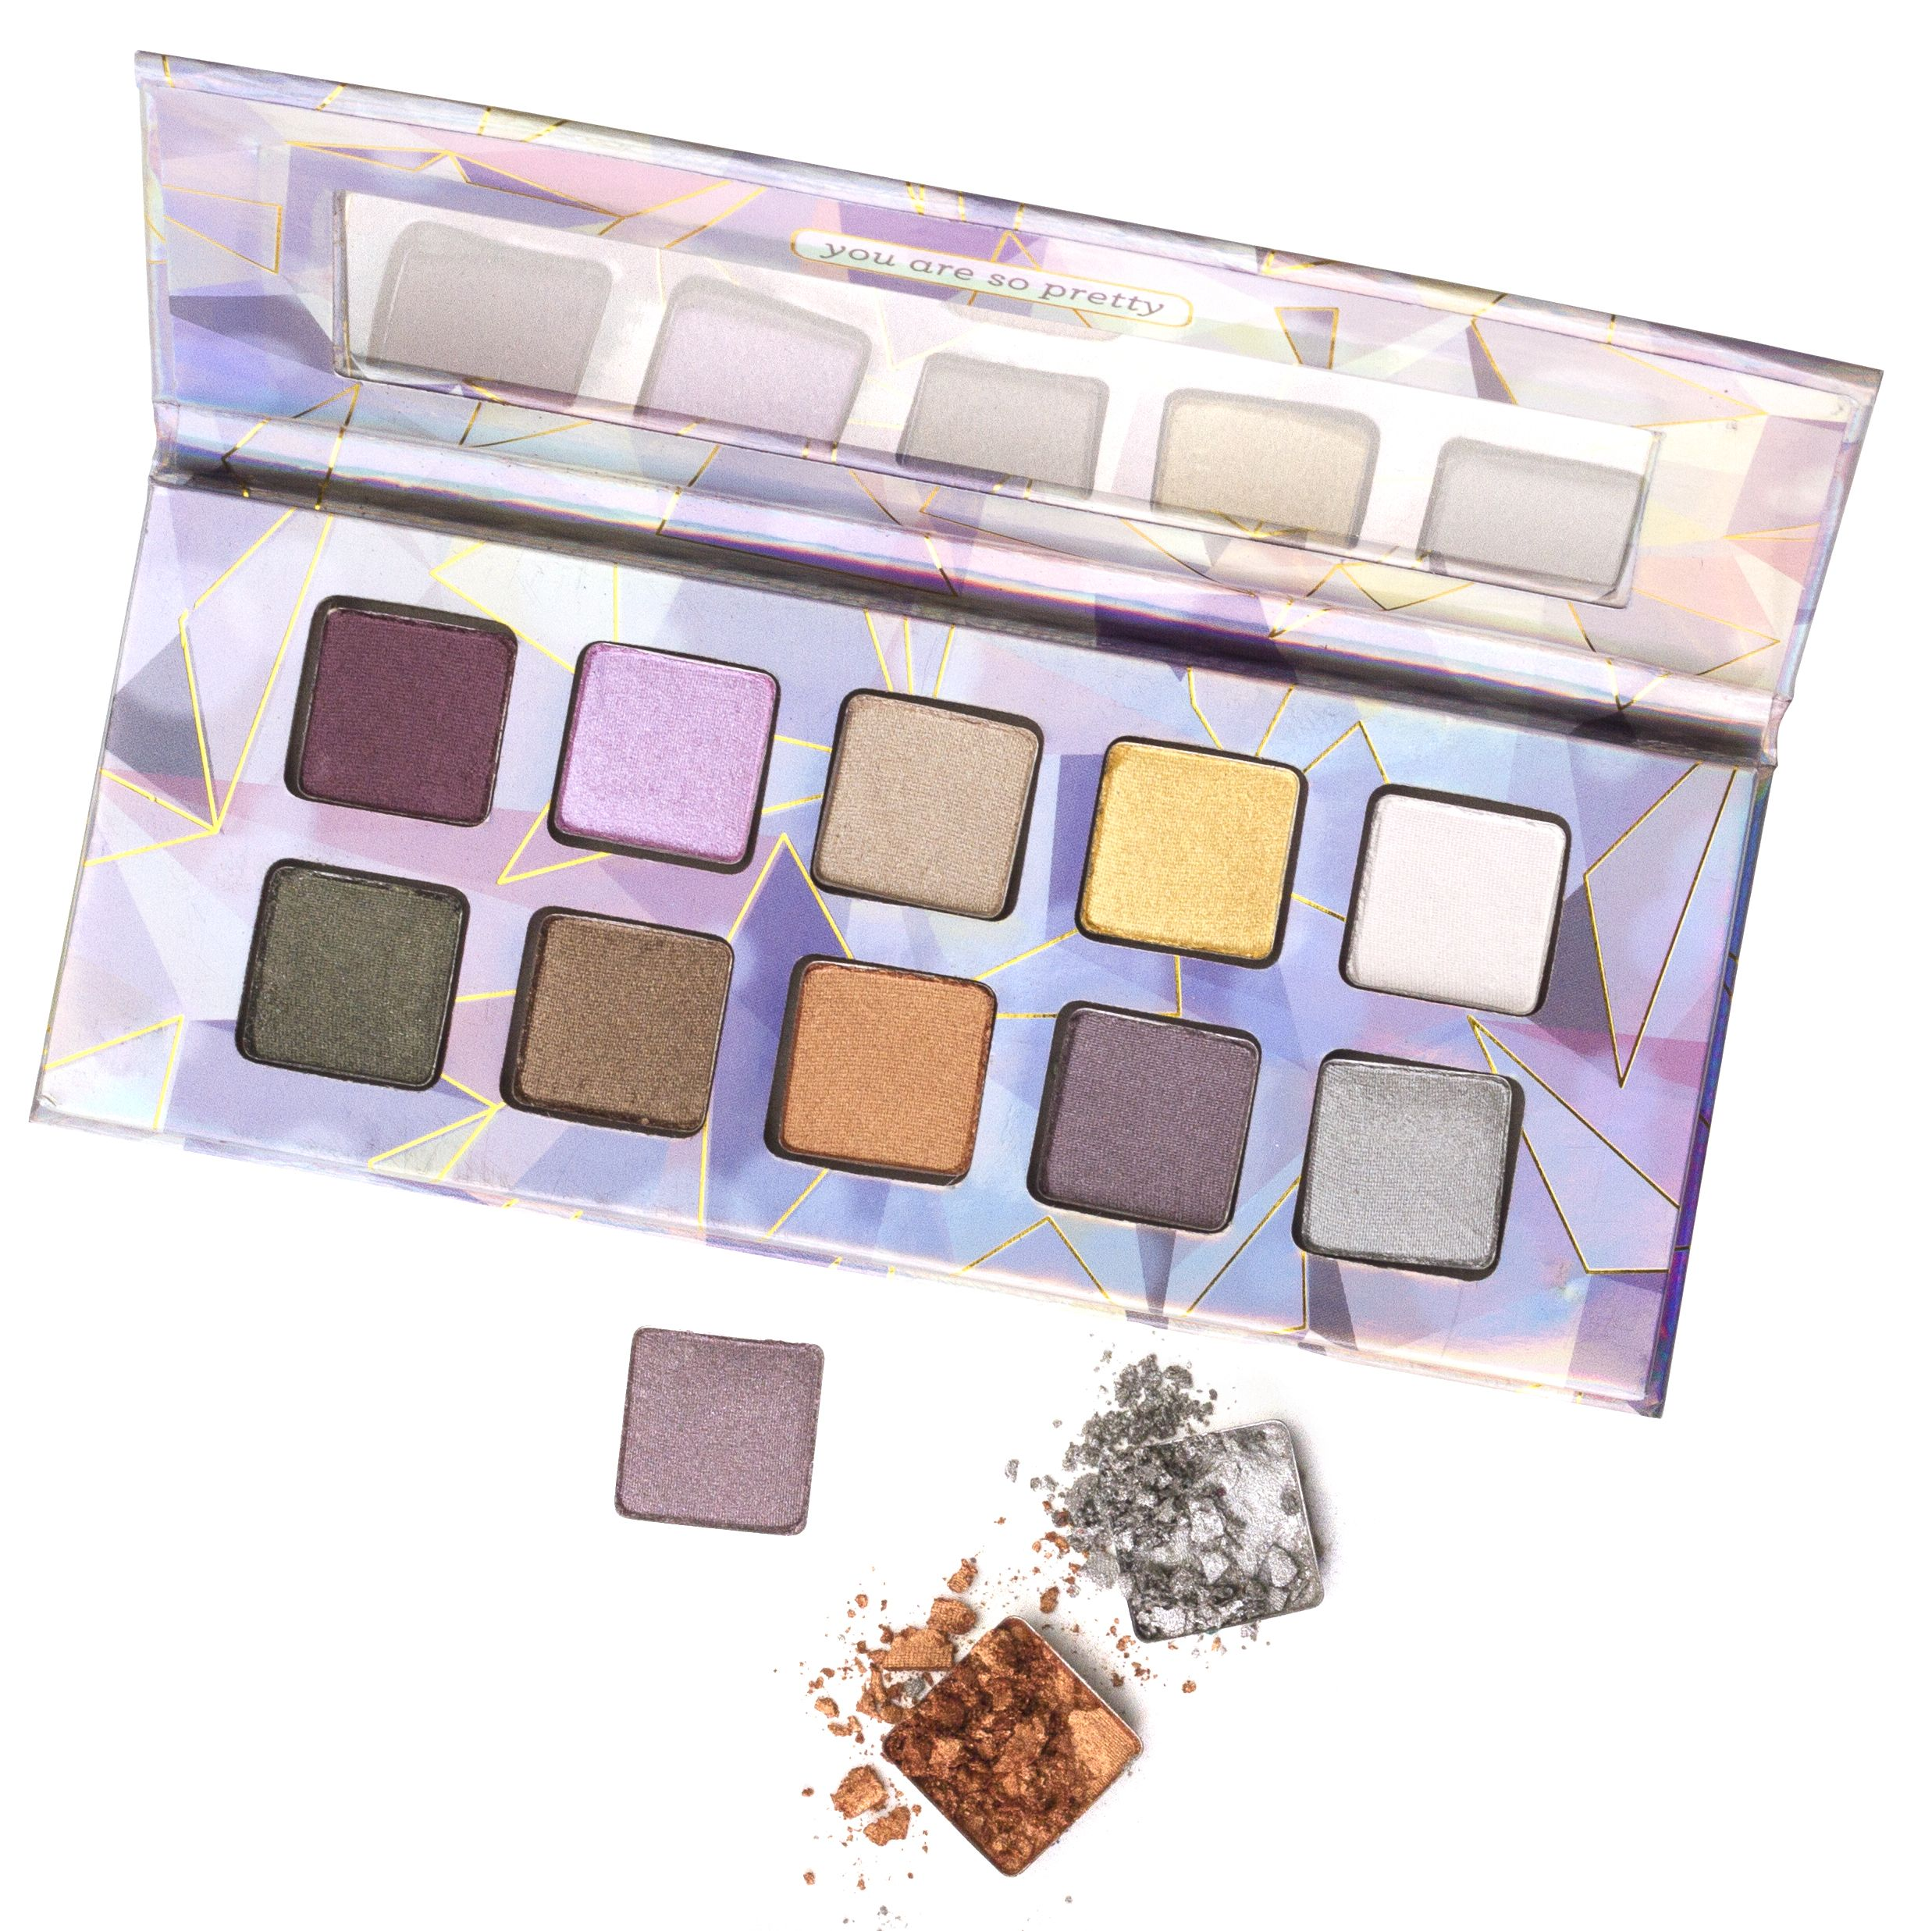 Pacifica's Crystal Matrix Mineral Eyeshadows is a